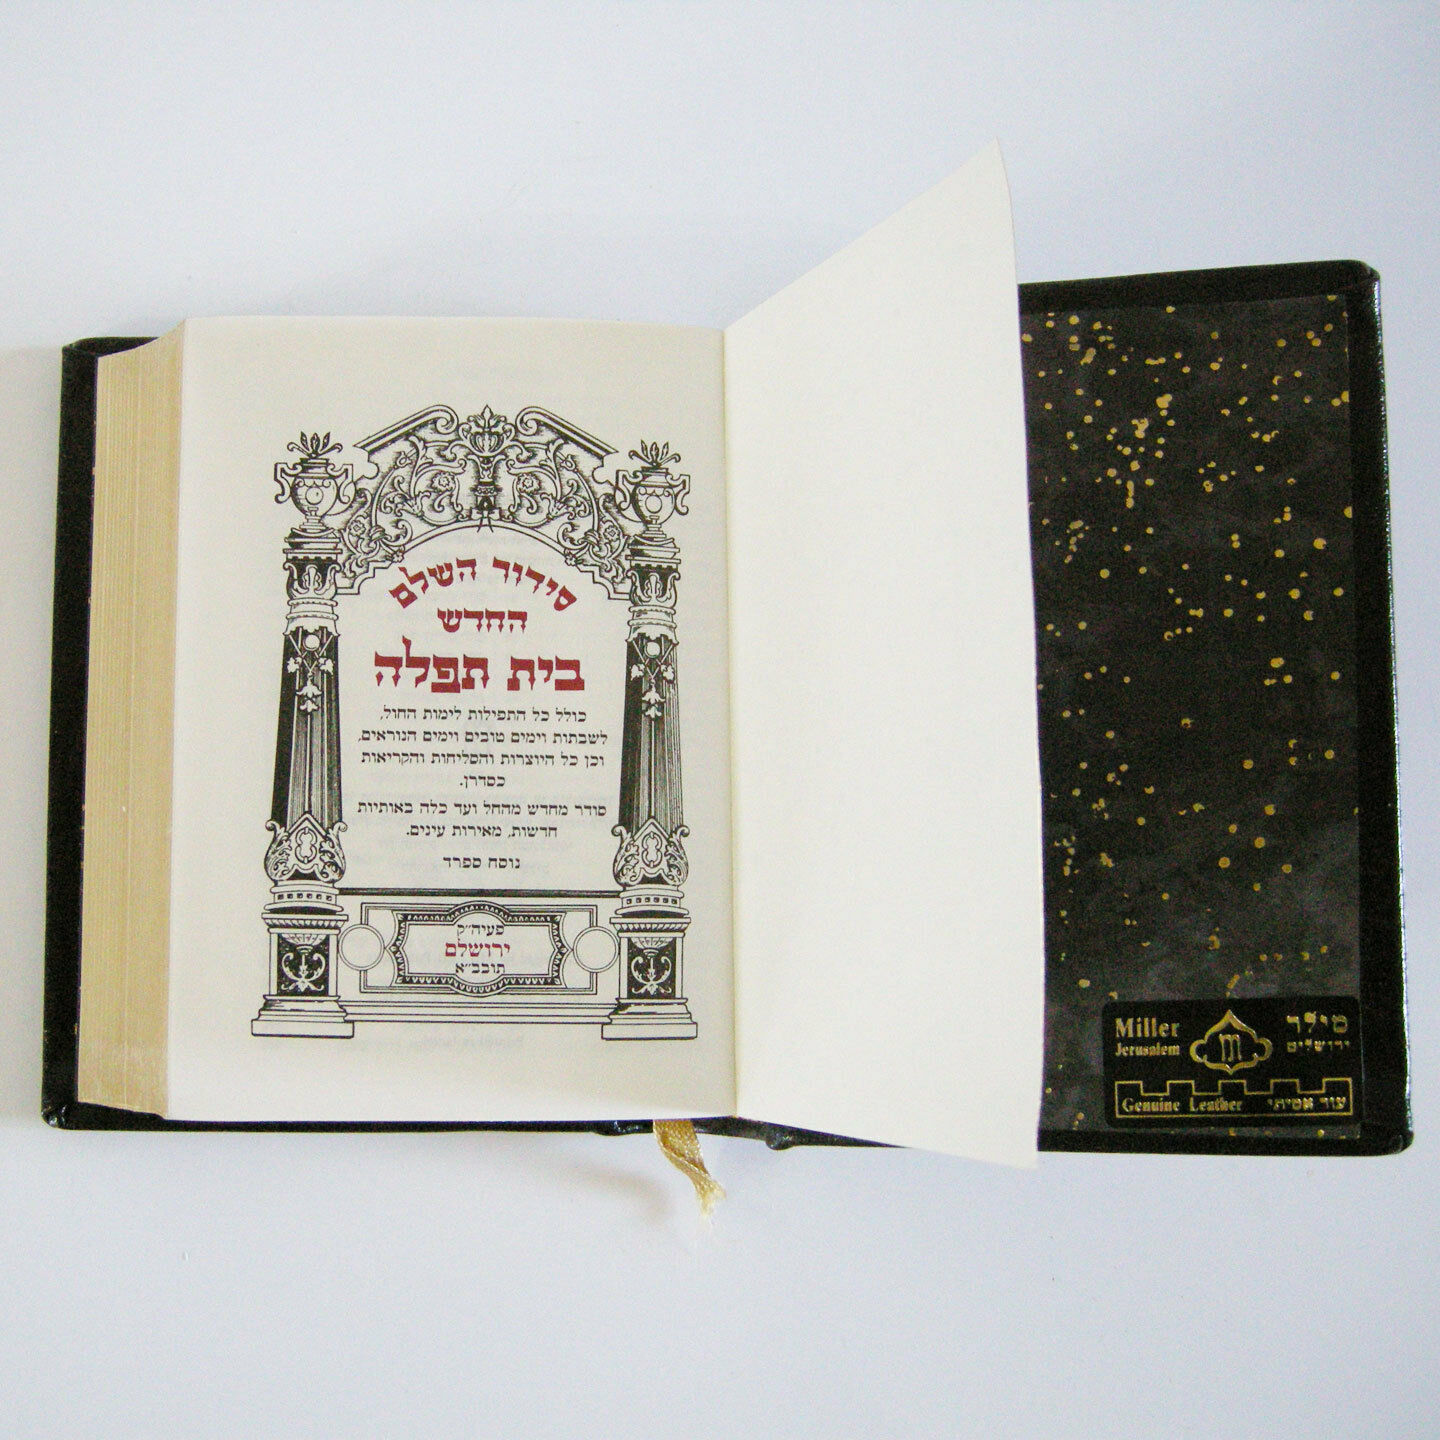 Genuine Leather-Bound Pocket Siddur Gilded Pages Hebrew Handmade Miller Israel (מוכר מישראל) 1